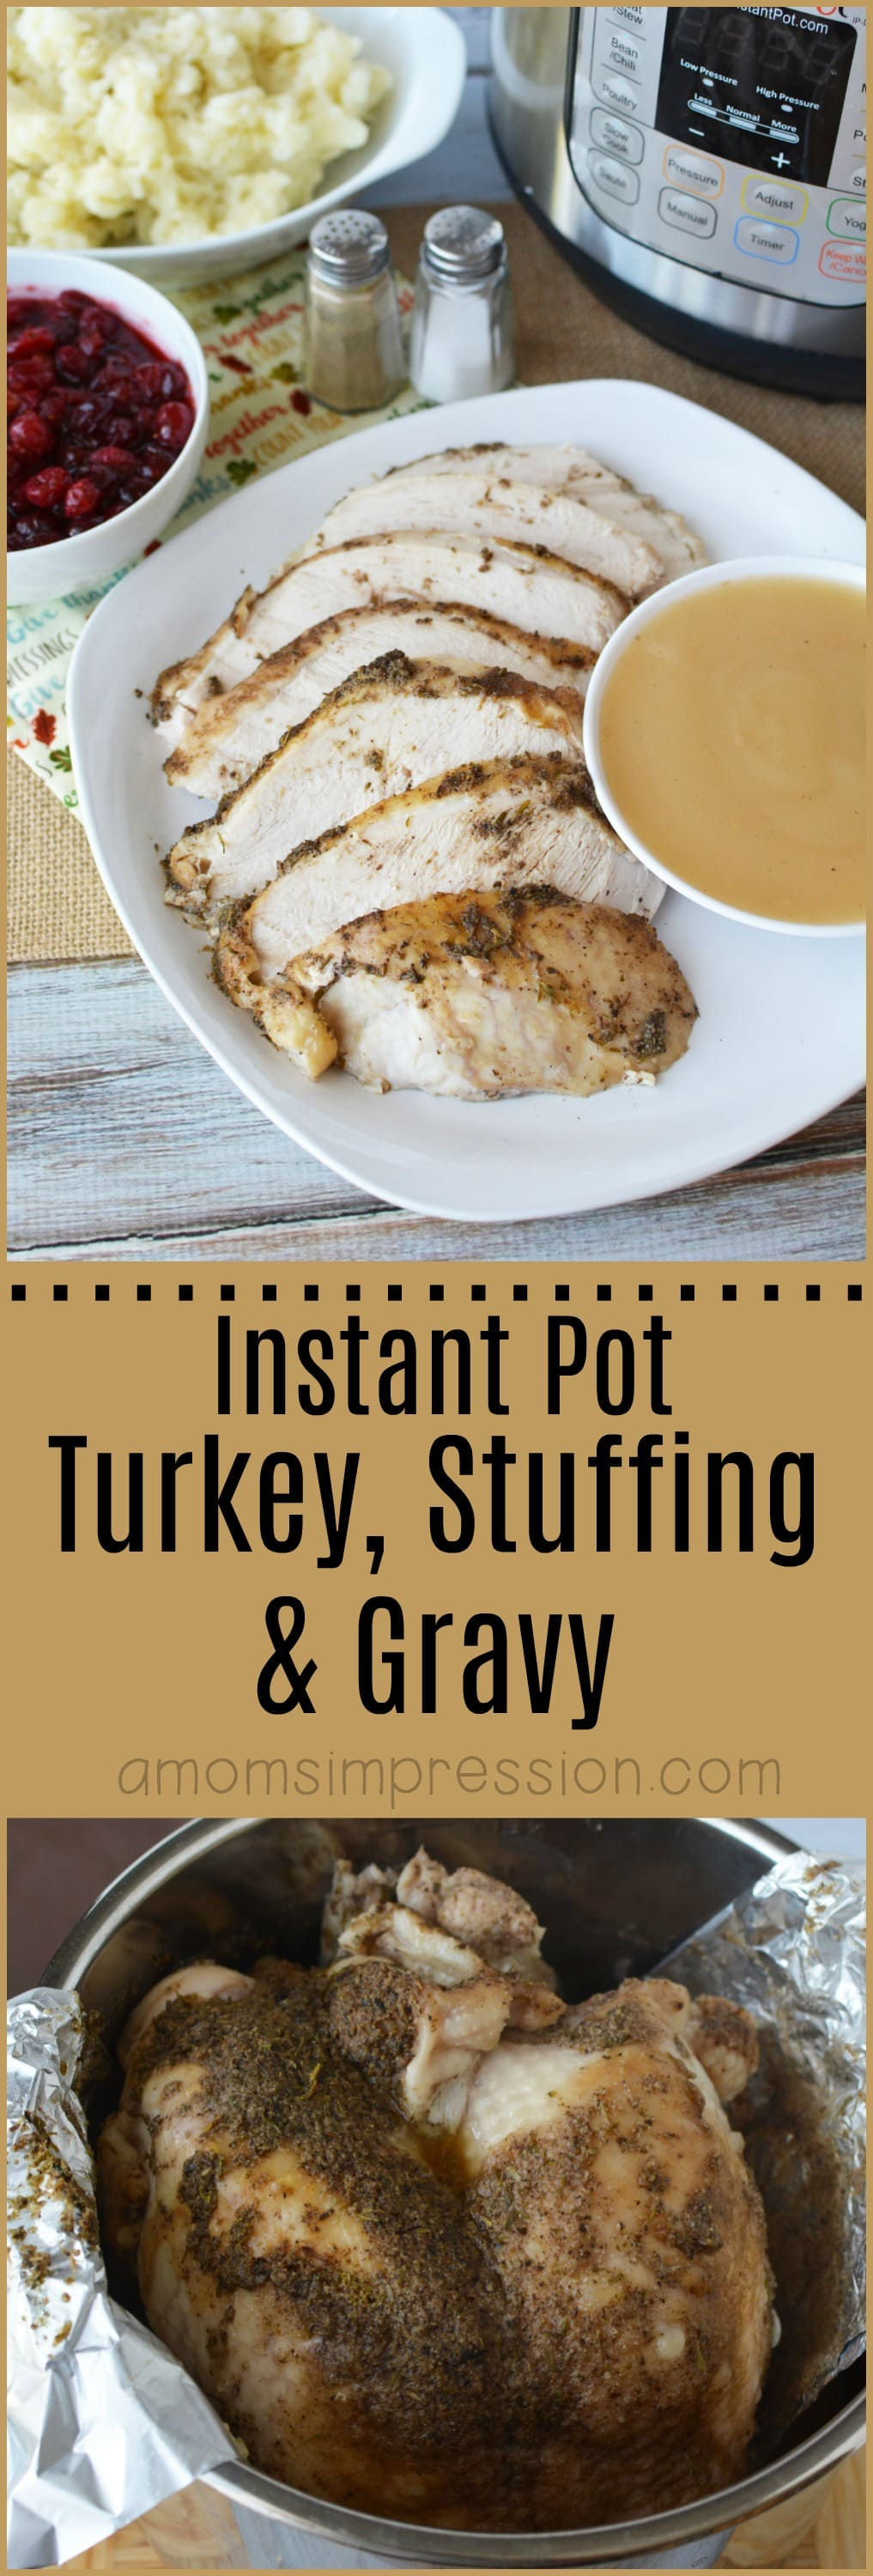 The best Thanksgiving turkey recipe is made in your pressure cooker. This Instant Pot Turkey Breast, gravy and stuffing recipe can be made in under 45 minutes. It's the moistest turkey recipe I have tried.